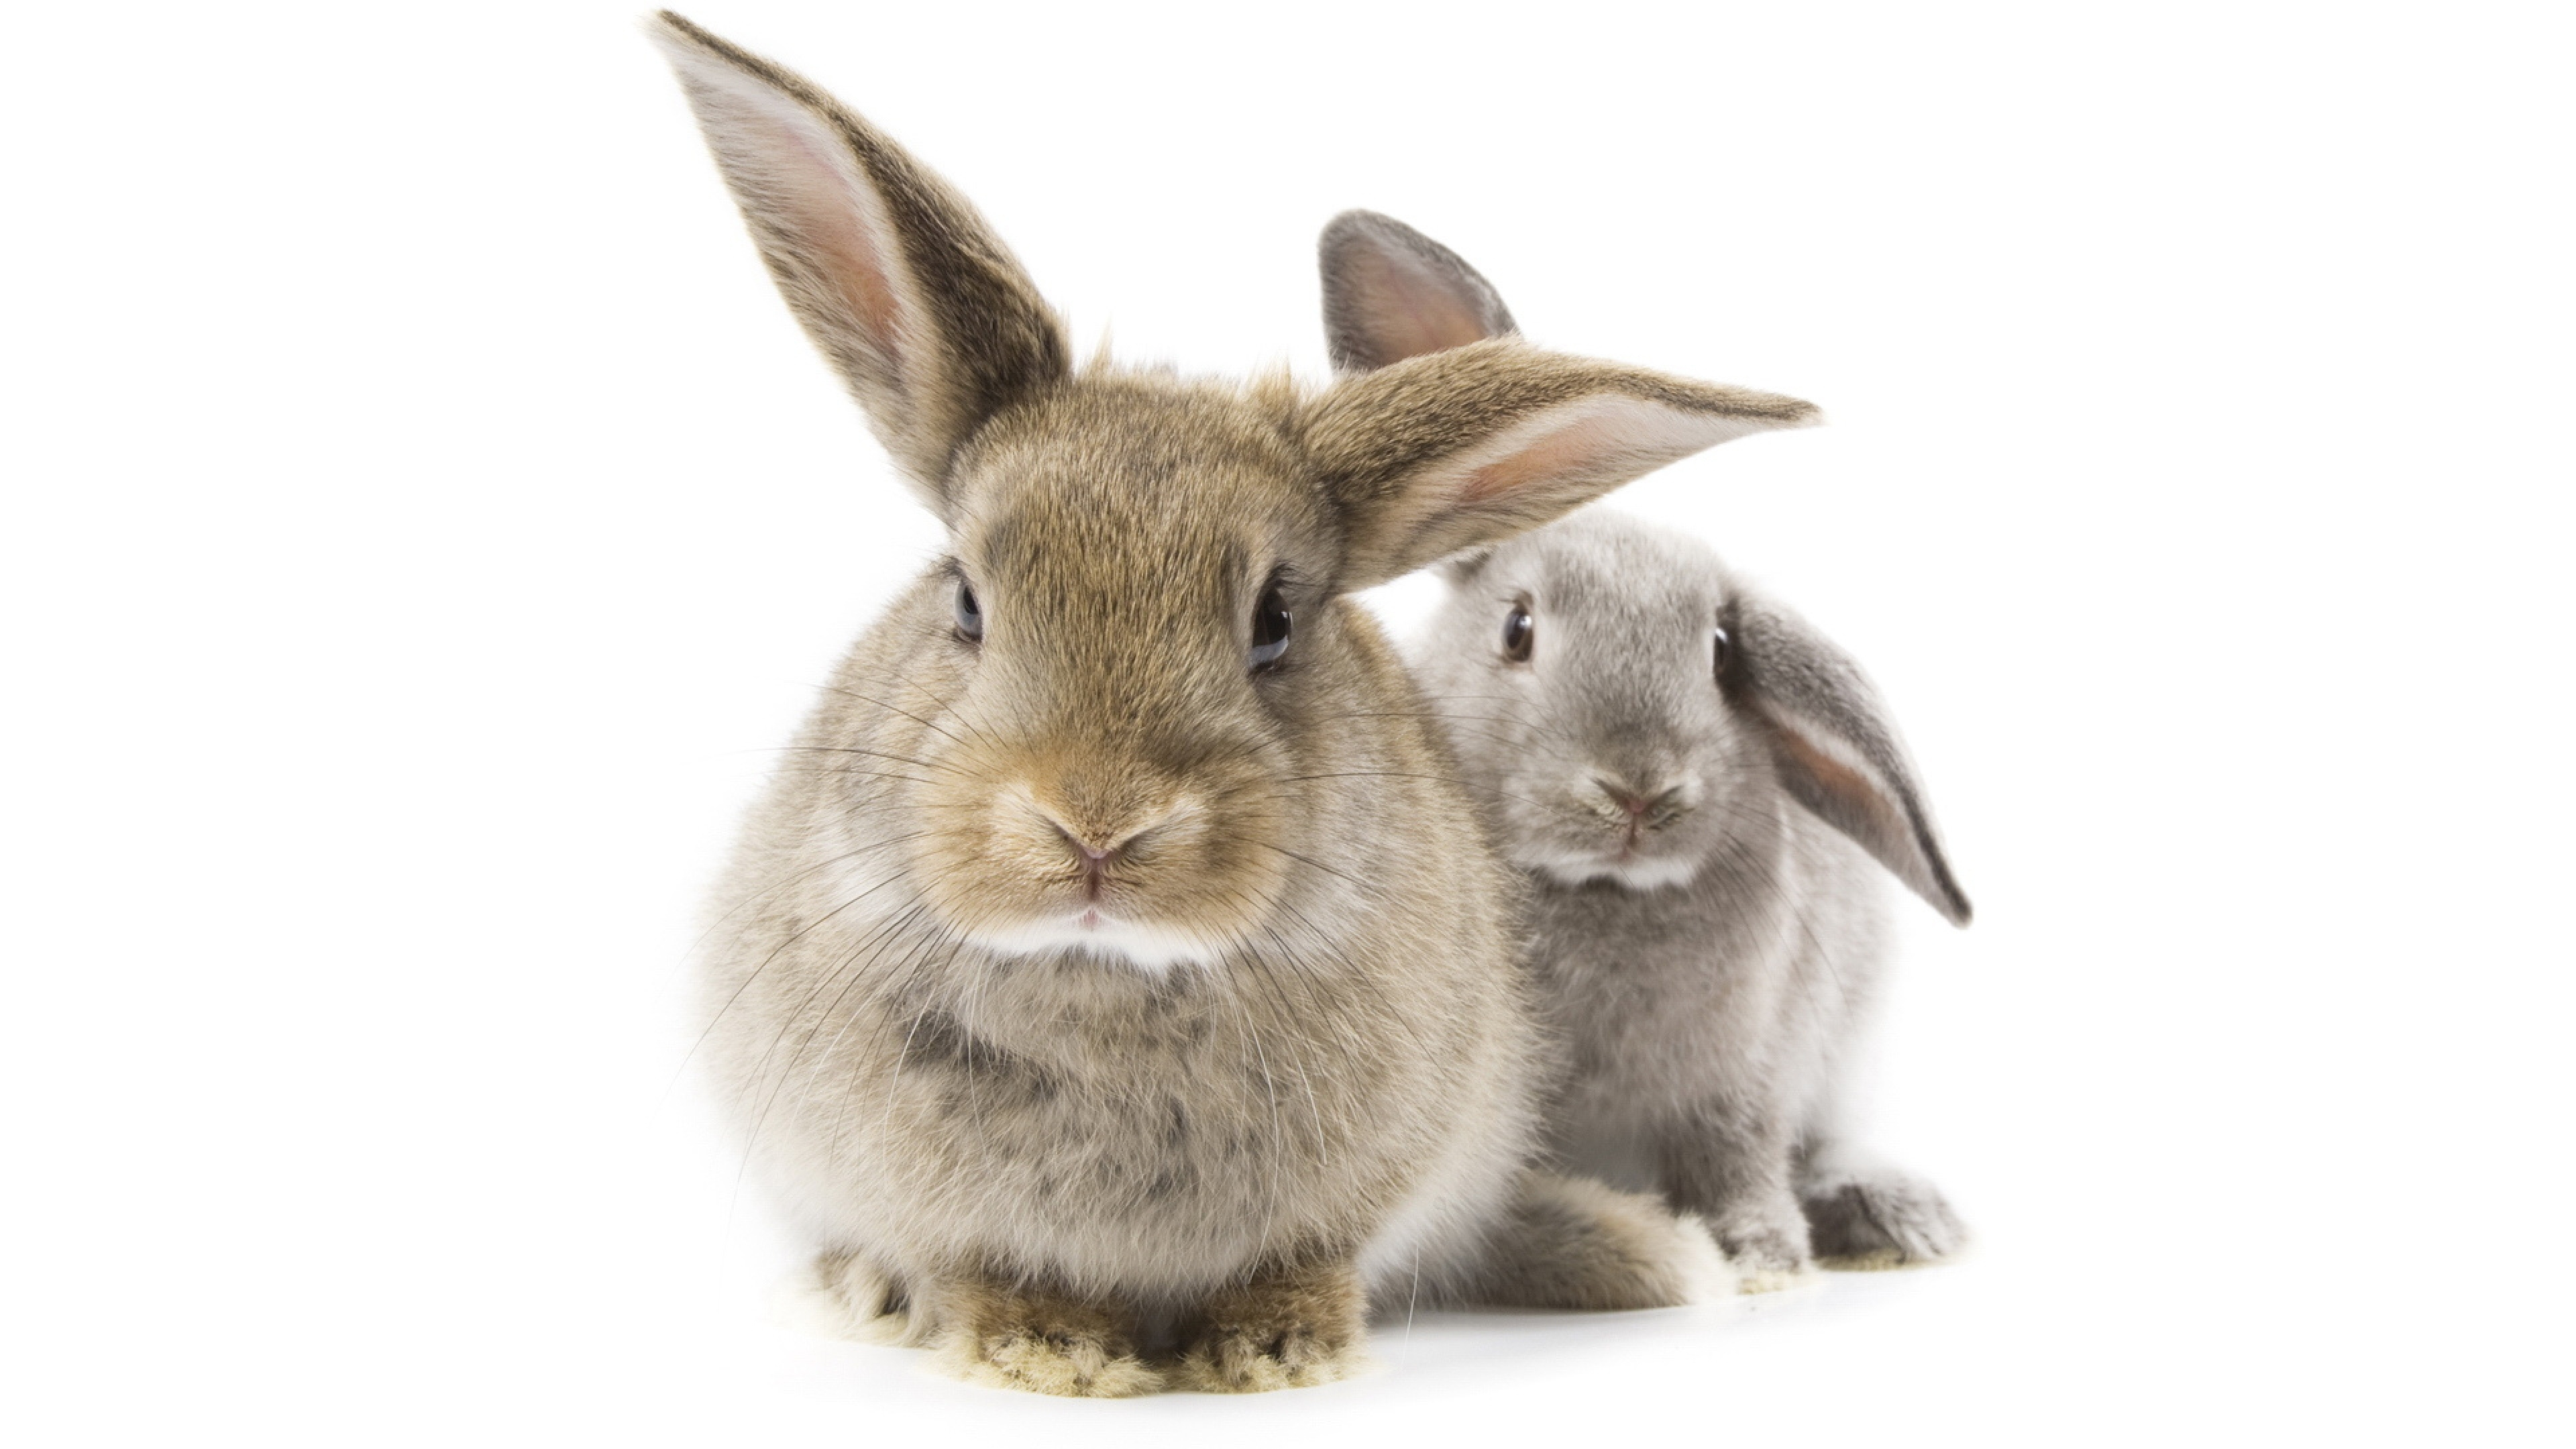 Photo of two rabbits